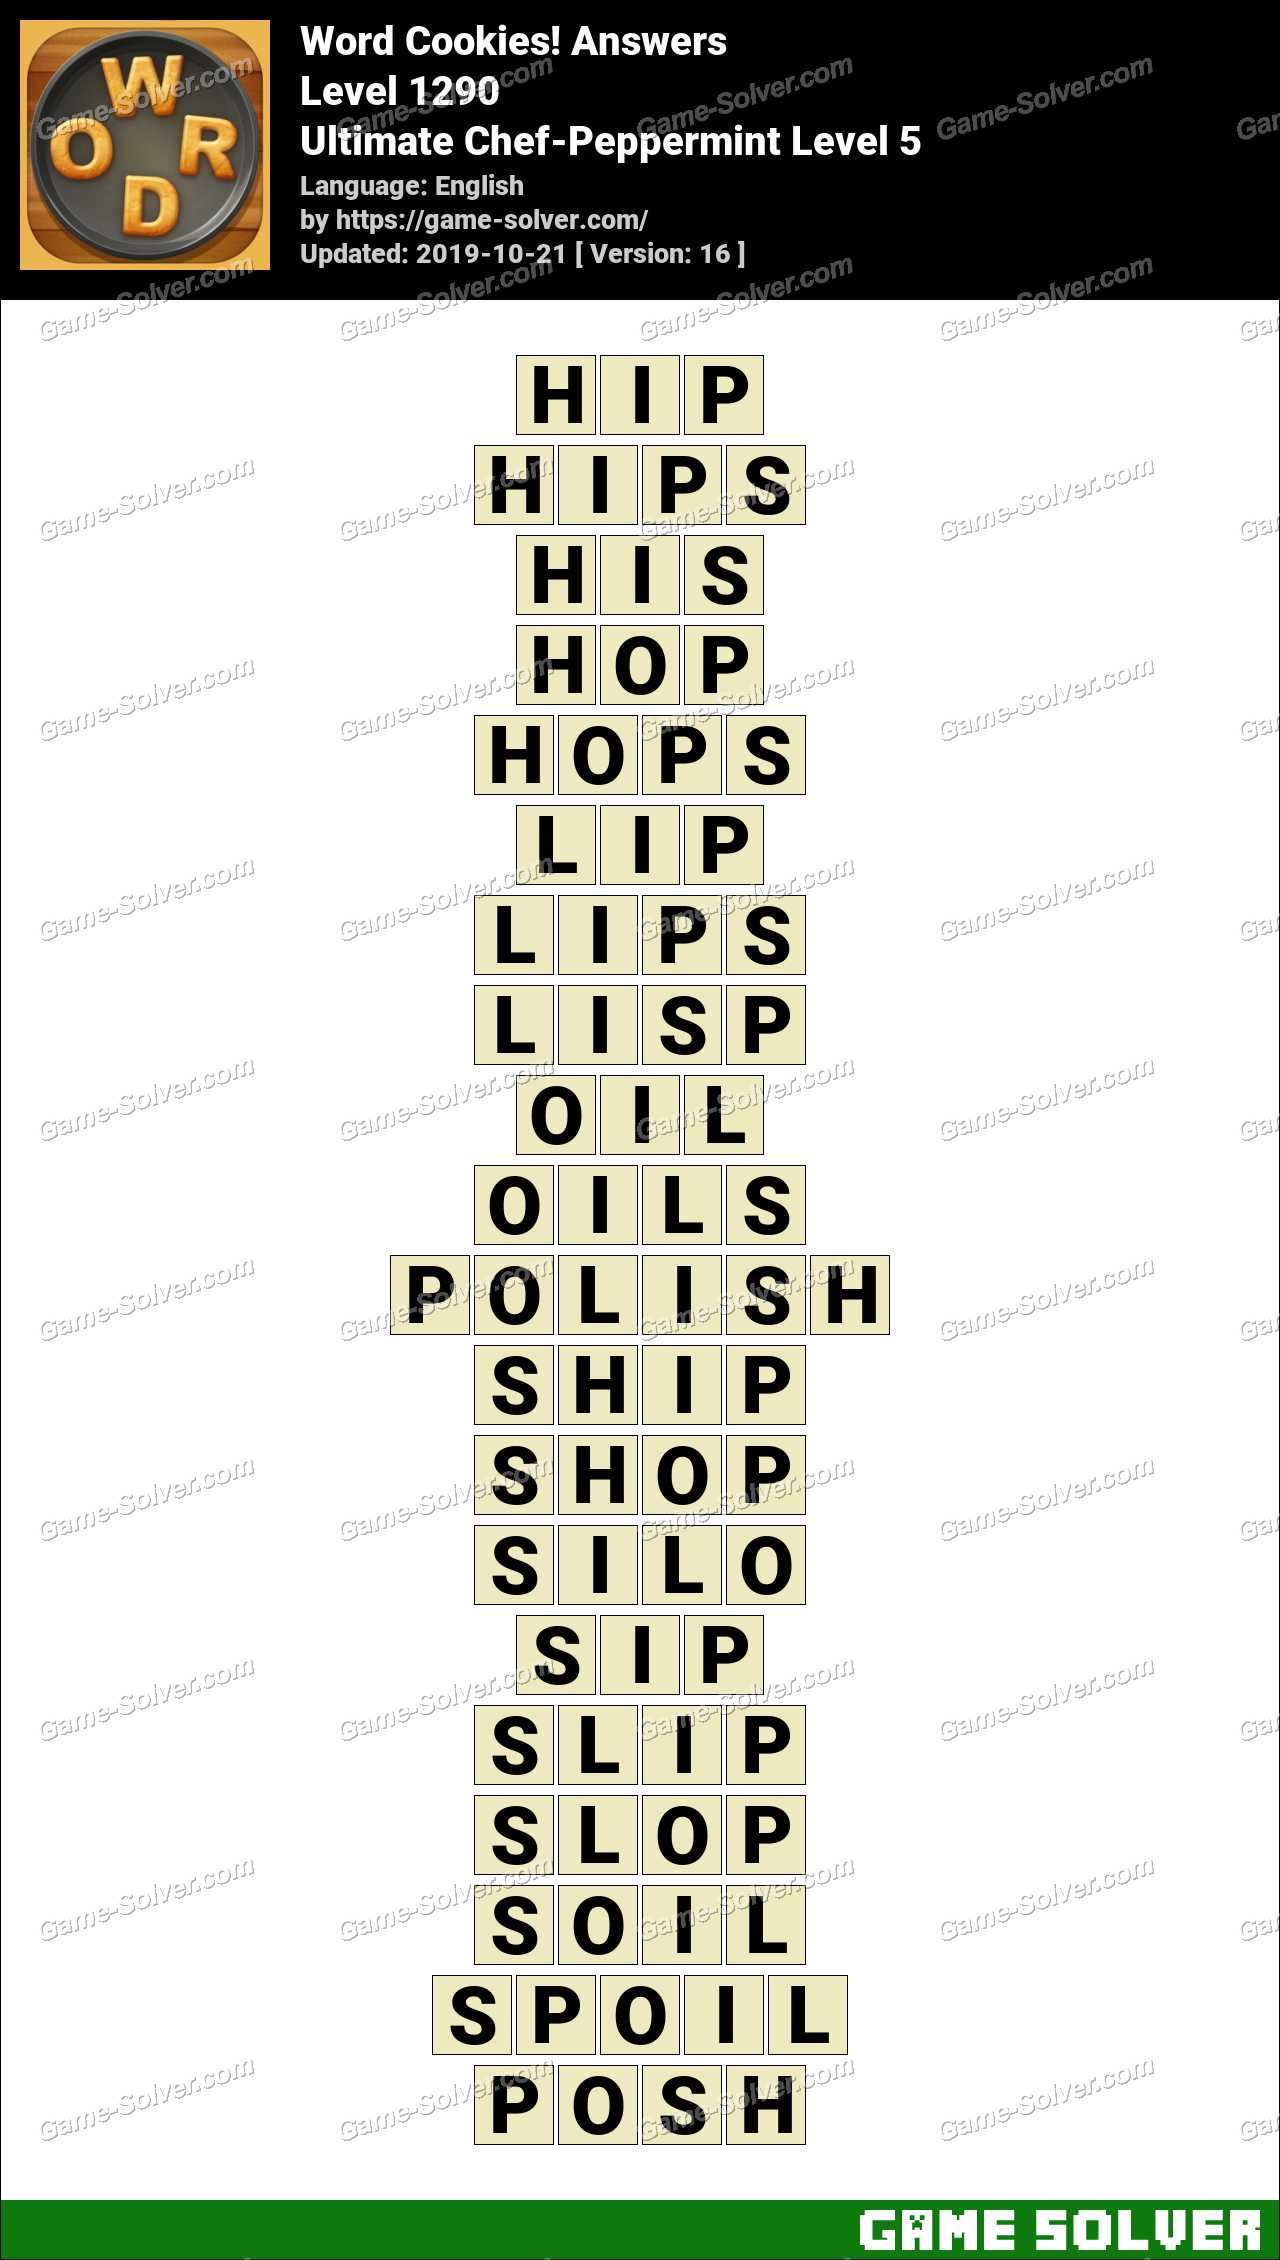 Word Cookies Ultimate Chef-Peppermint Level 5 Answers